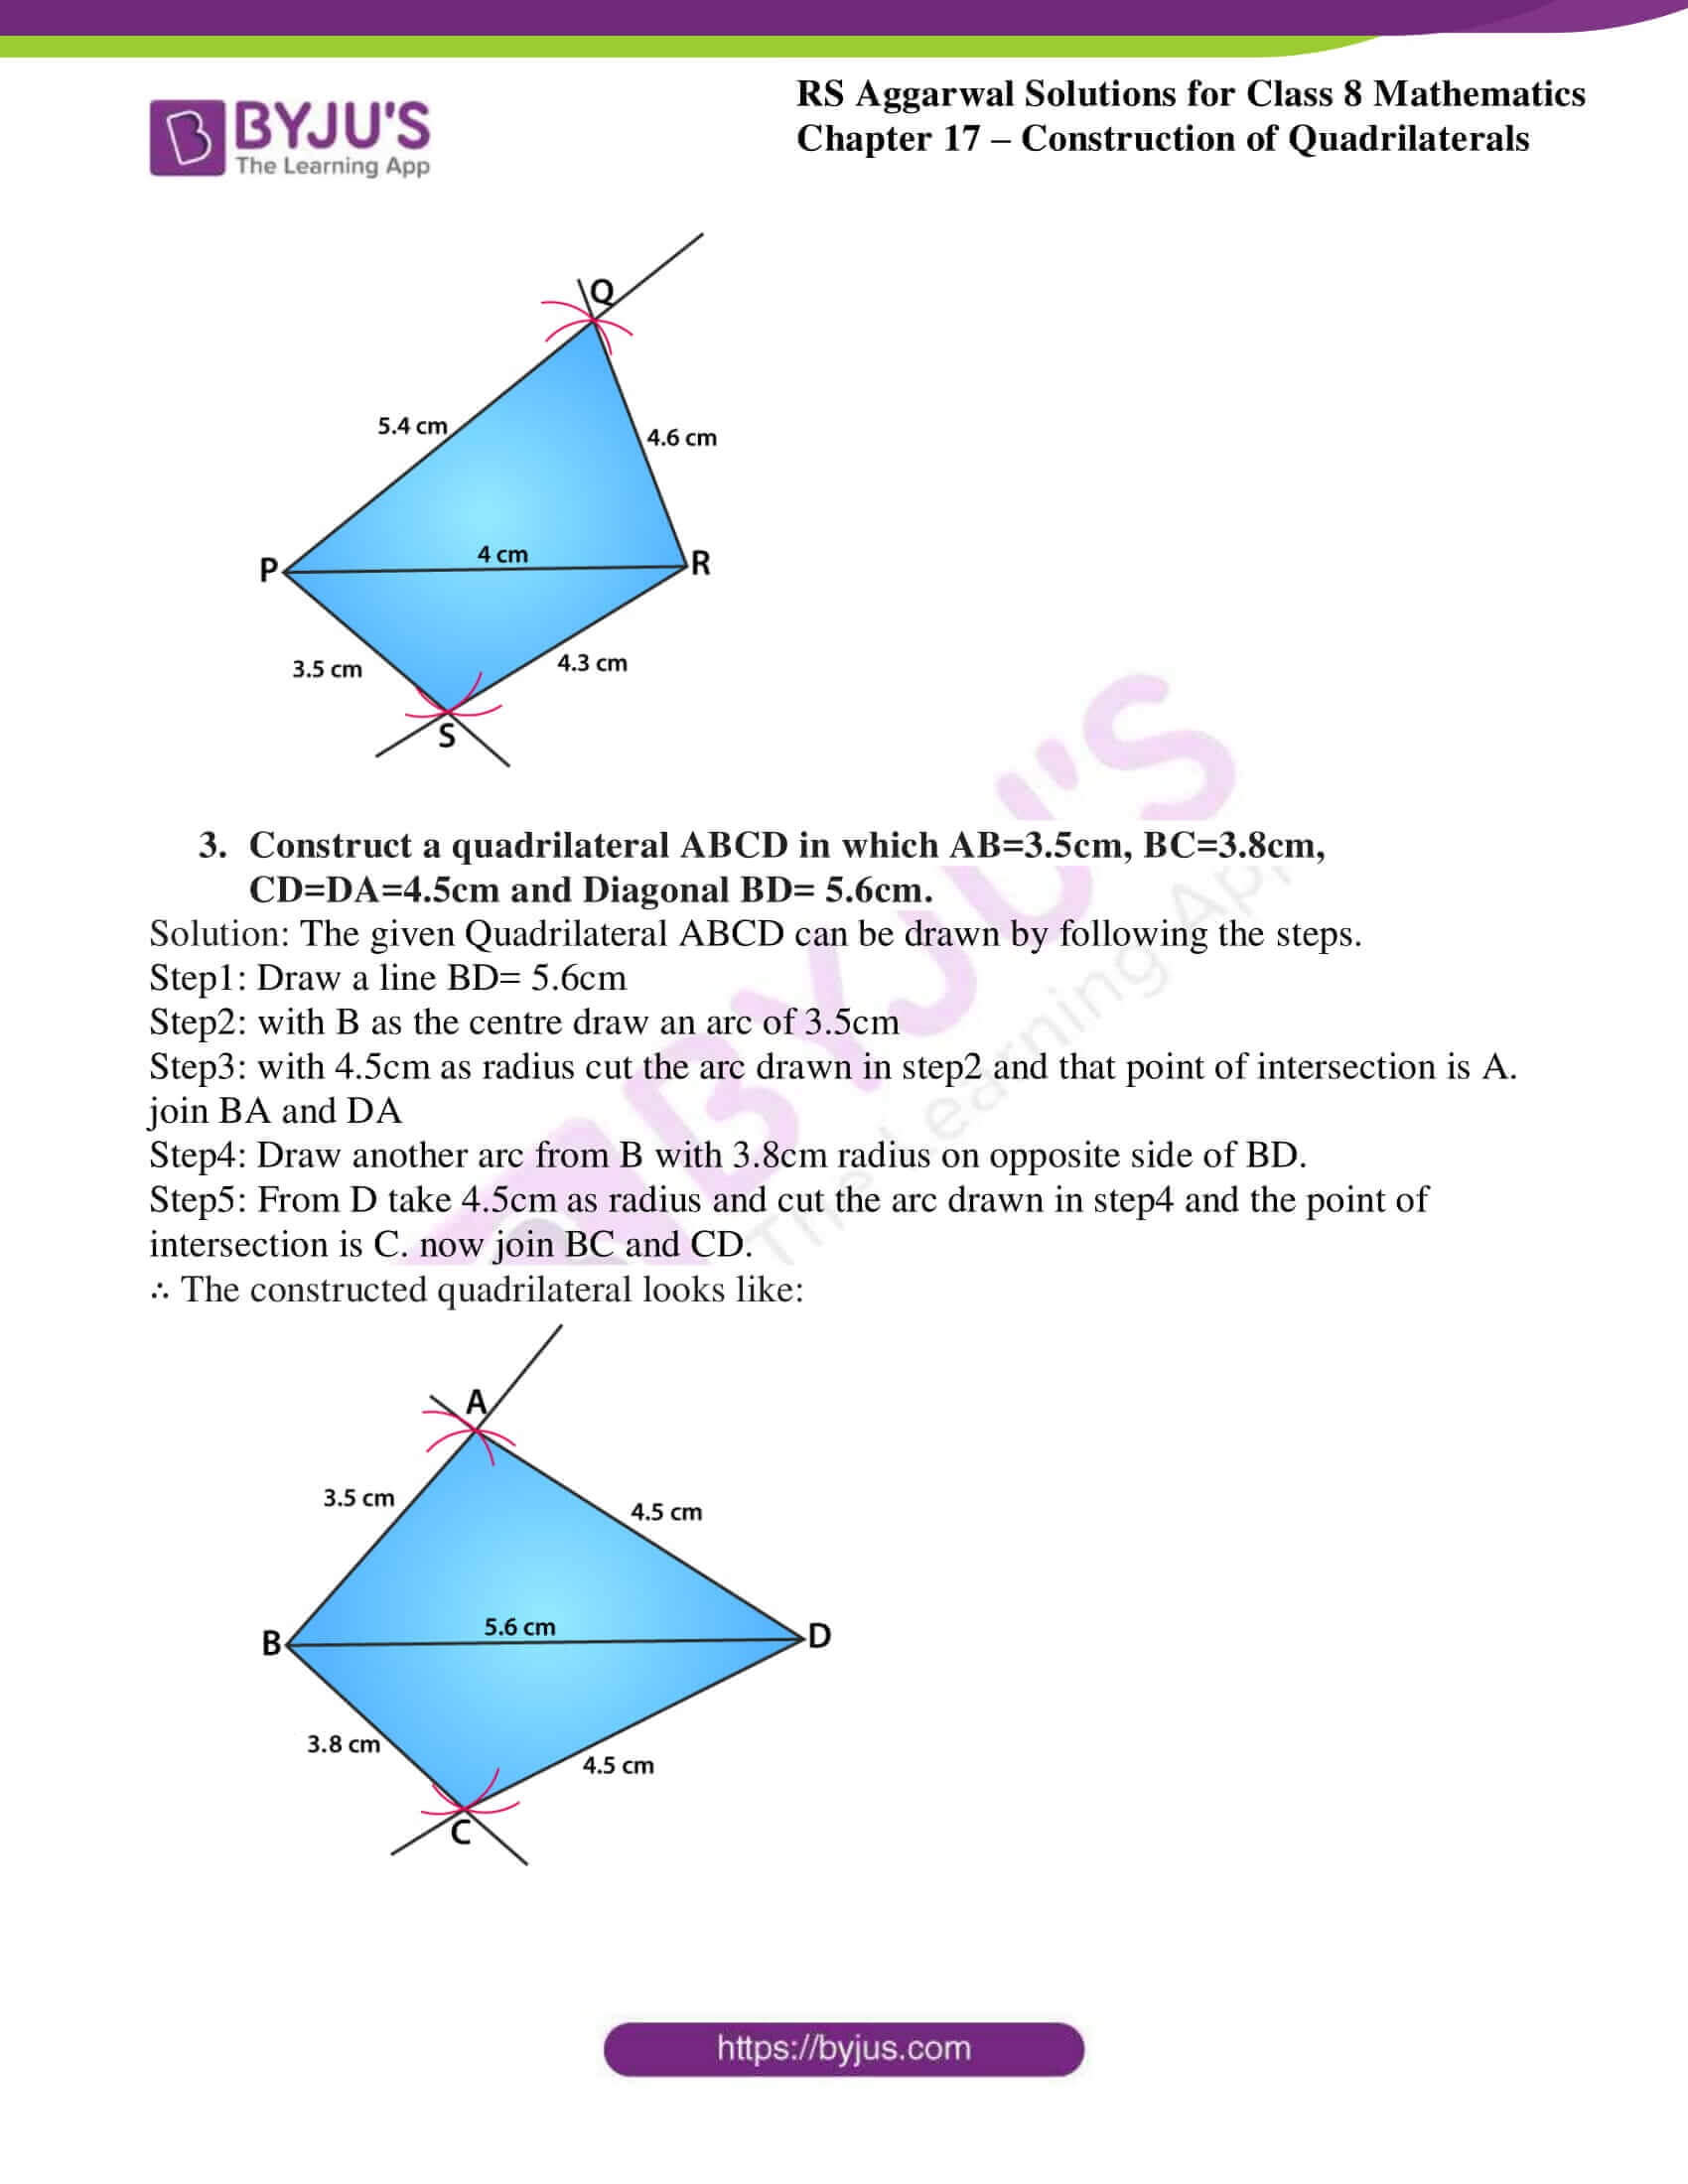 rs aggarwal solutions class 8 maths chapter 17a